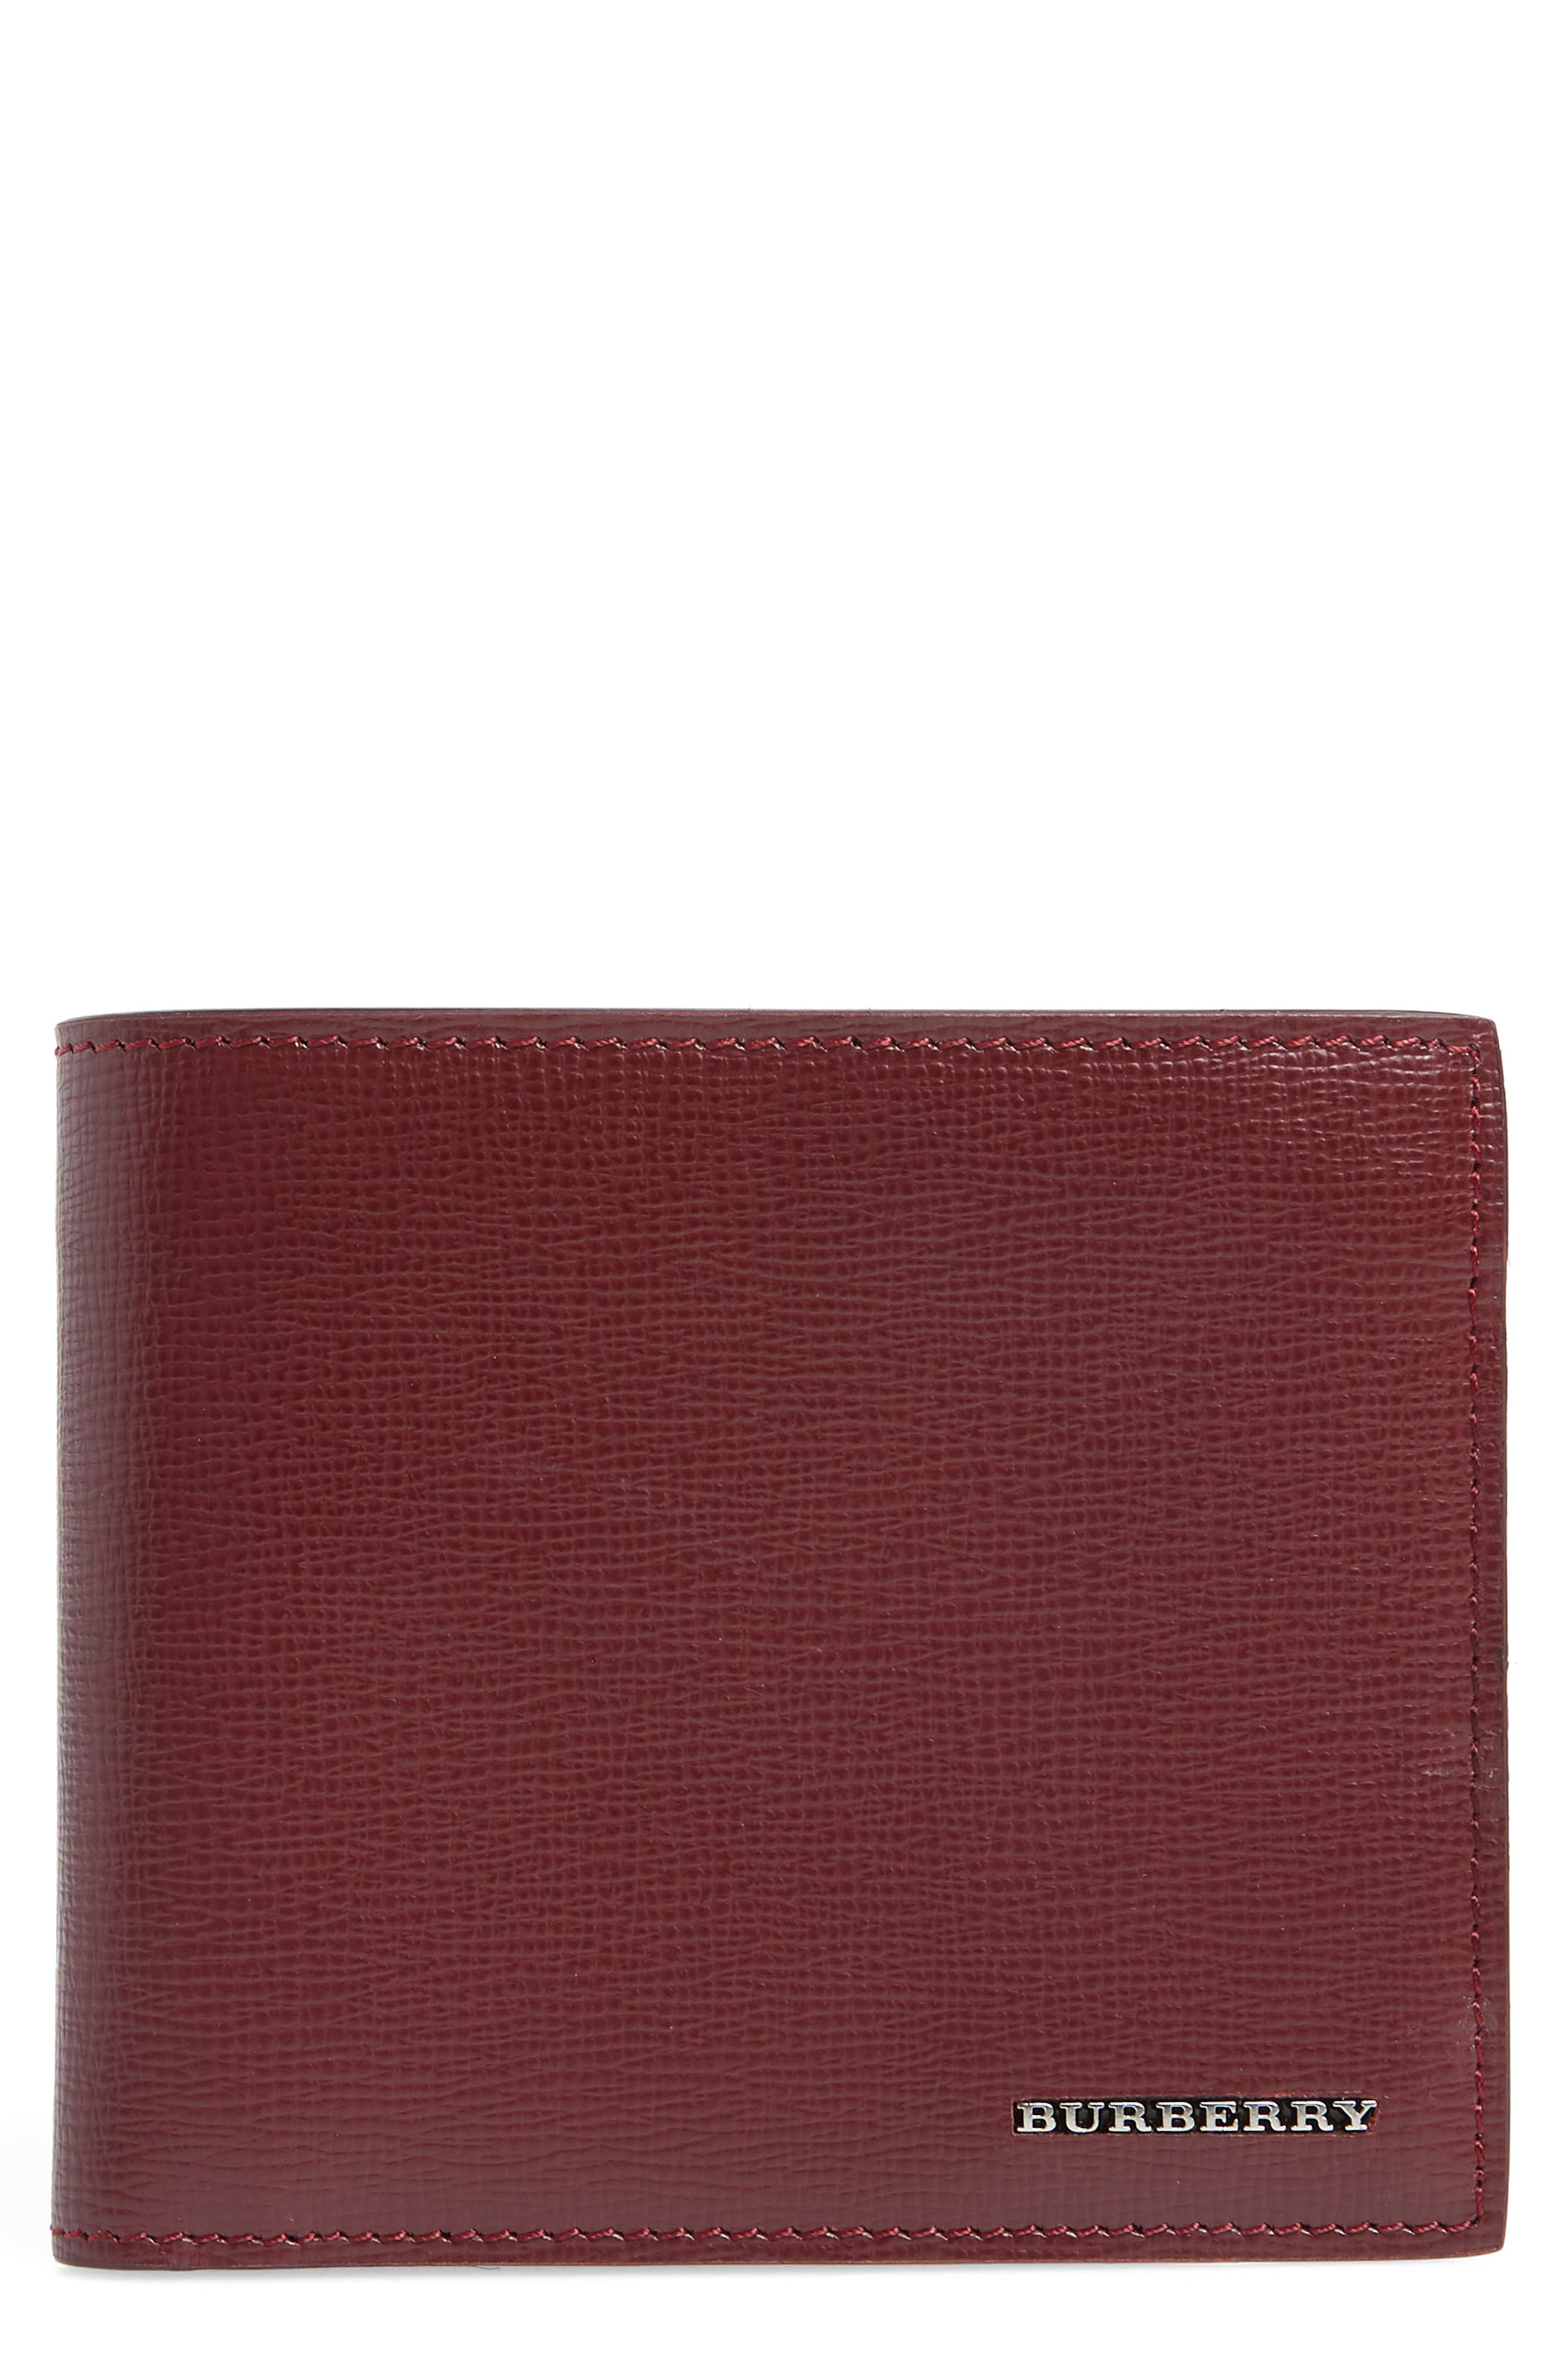 Leather Bifold Wallet,                         Main,                         color, Burgundy Red